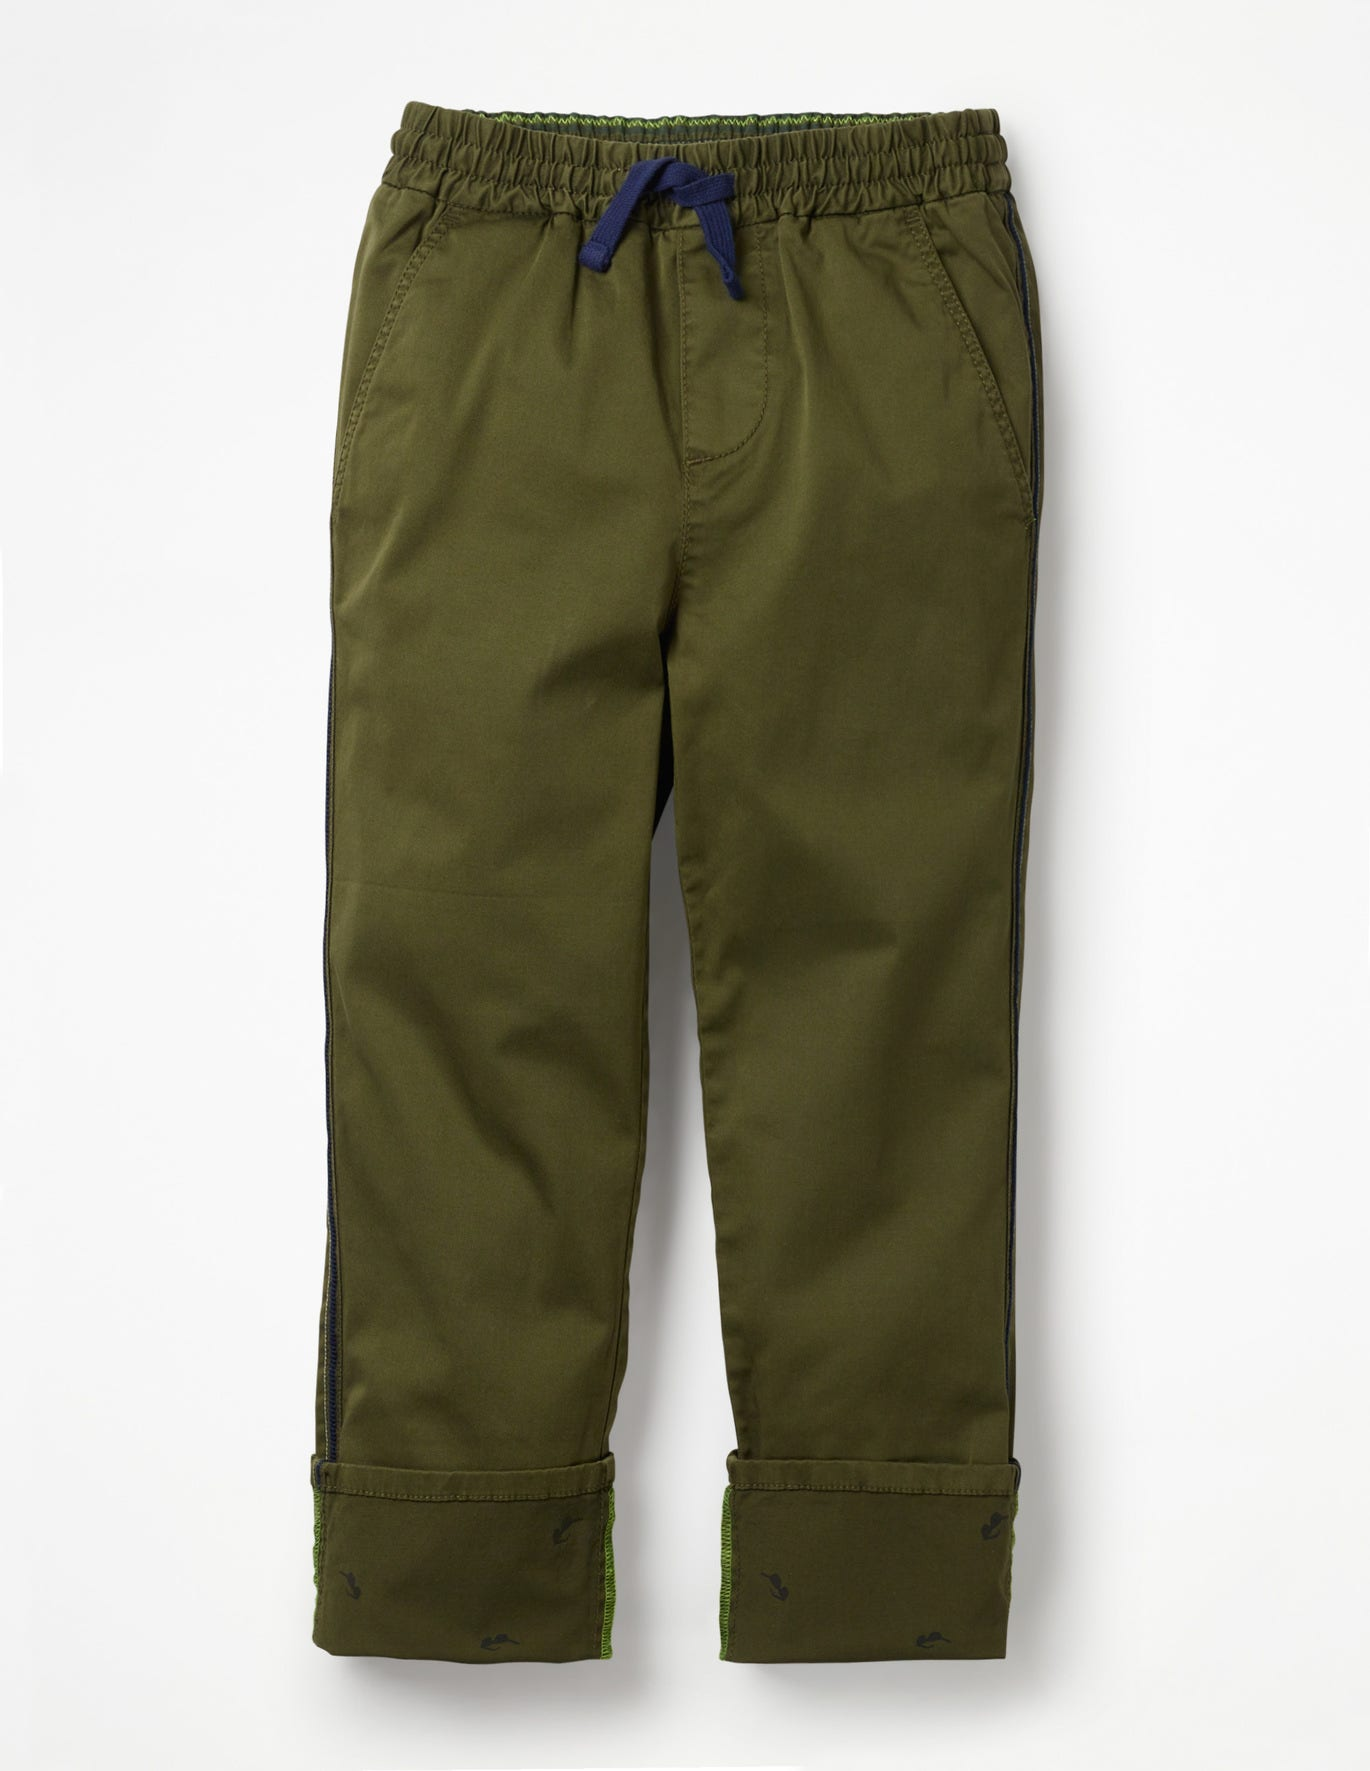 Pull-On Chino Pants - Ghillie Green B0603-DGR